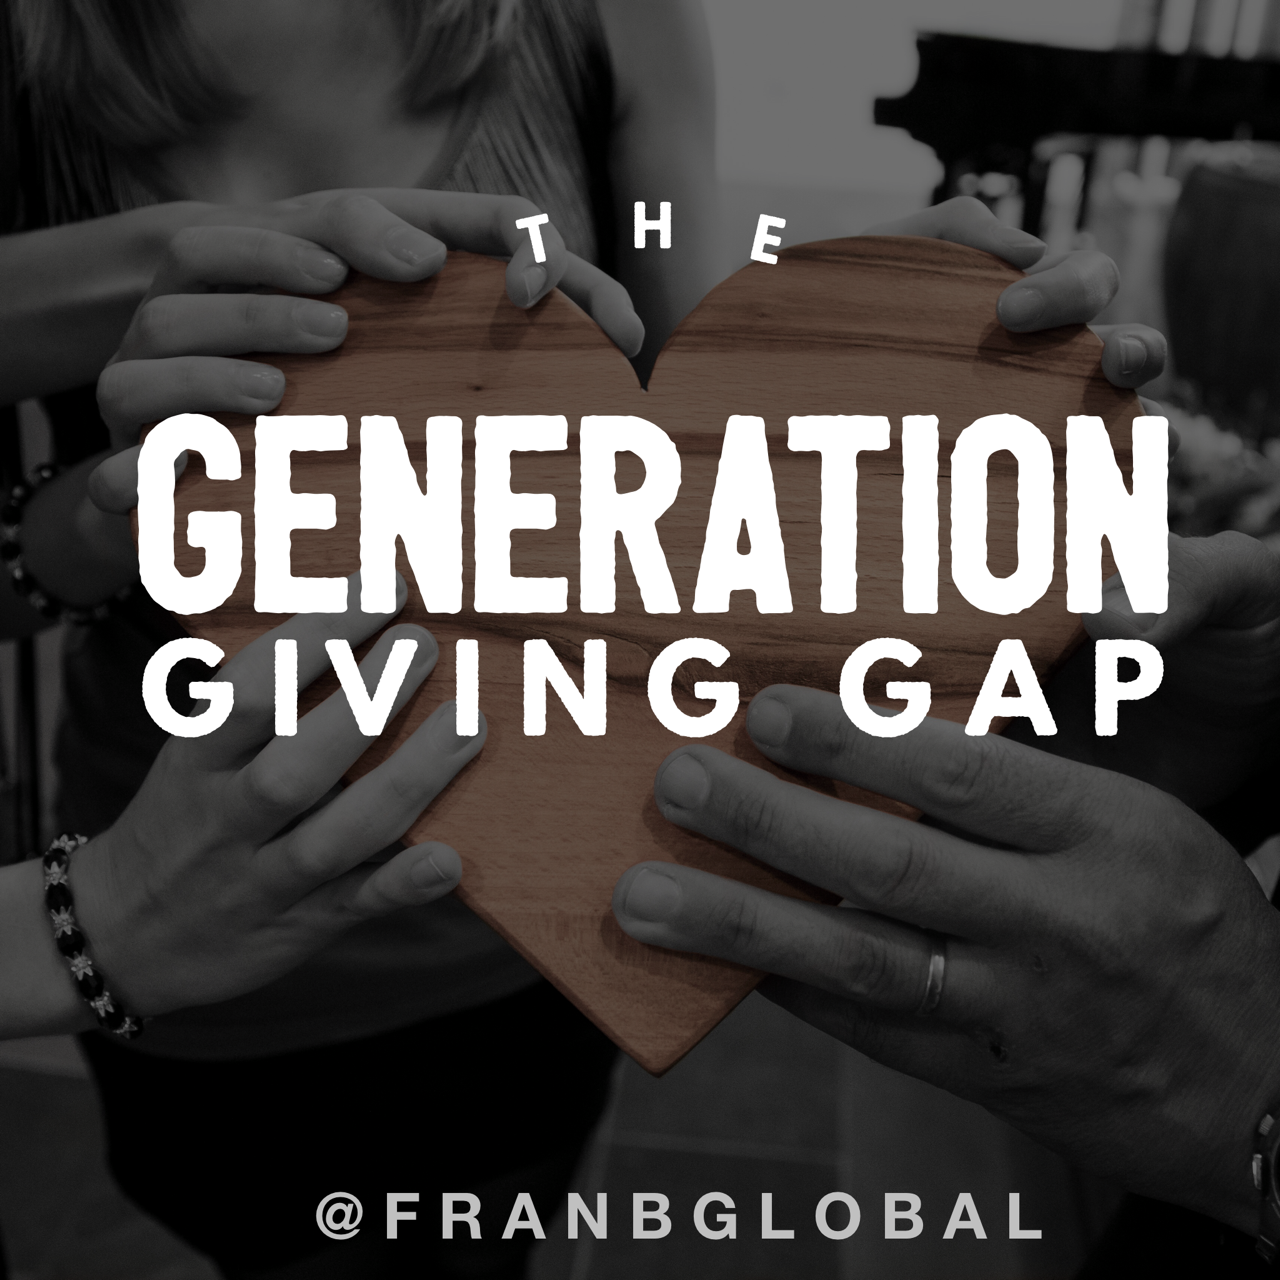 Fran Boorman FranBGlobal Blog - The Generation Giving Gap